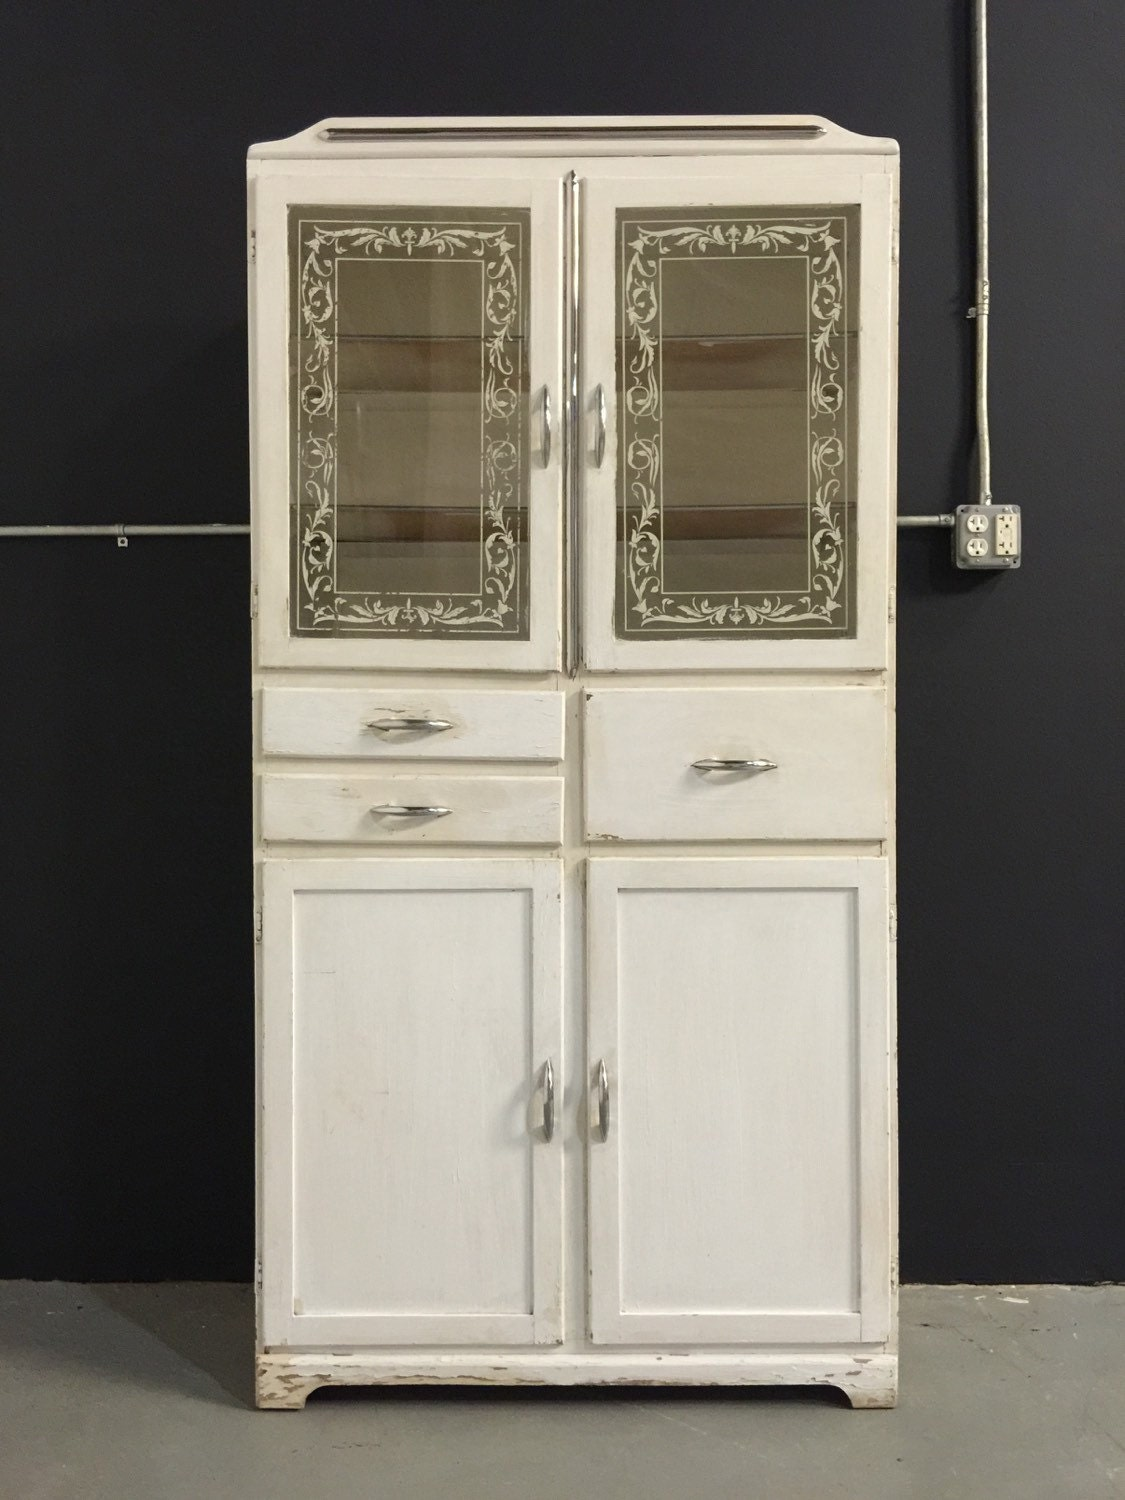 Vintage 1940s tall medicine cabinet glass doors white Glass cabinet doors